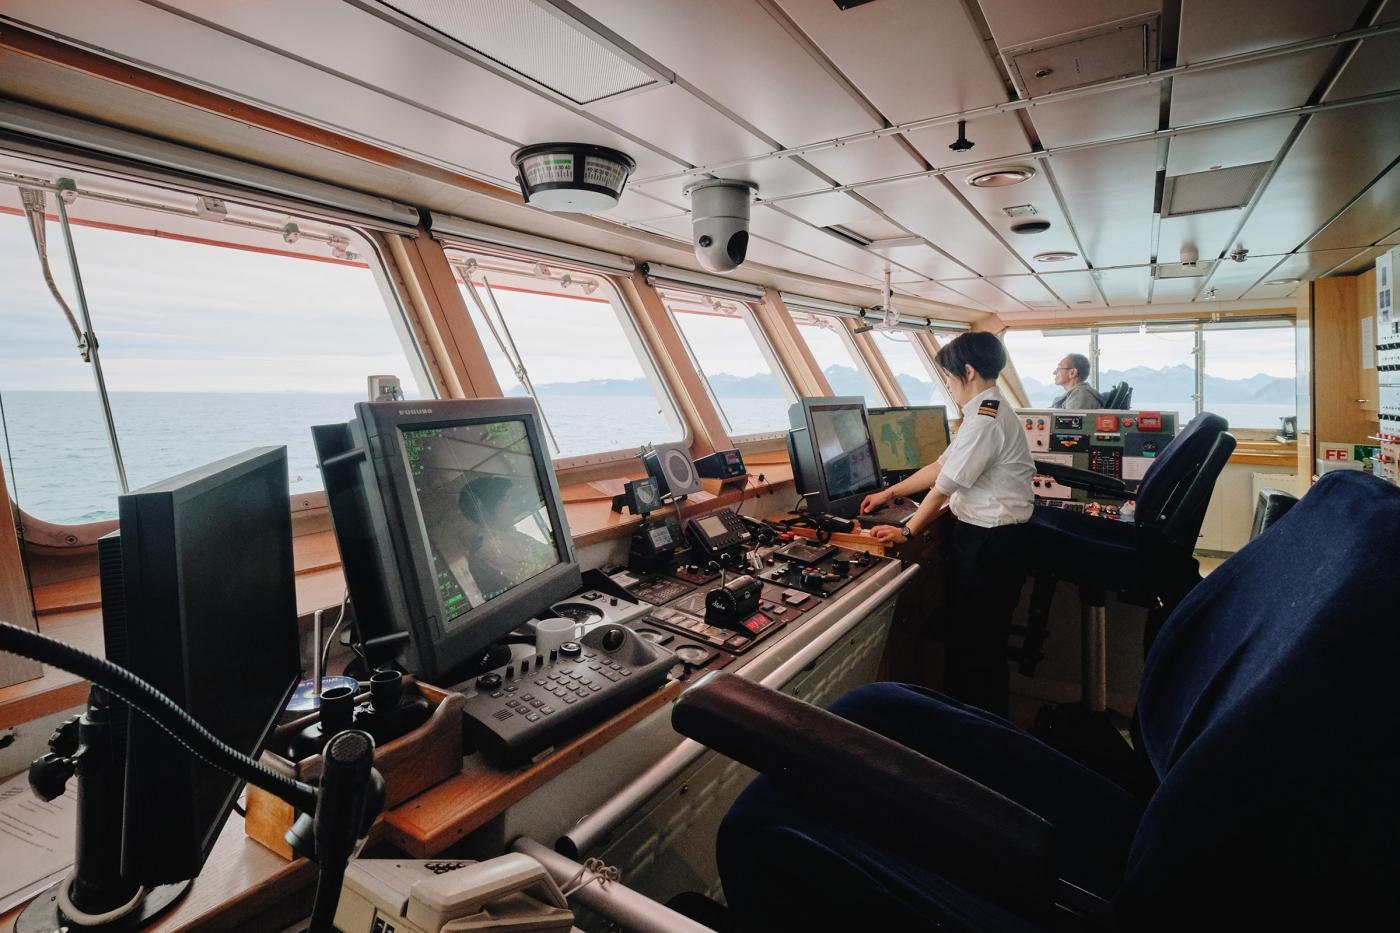 Second Officer at the helm on Sarfaq Ittuk Bridge. Photo by Lisa Germany